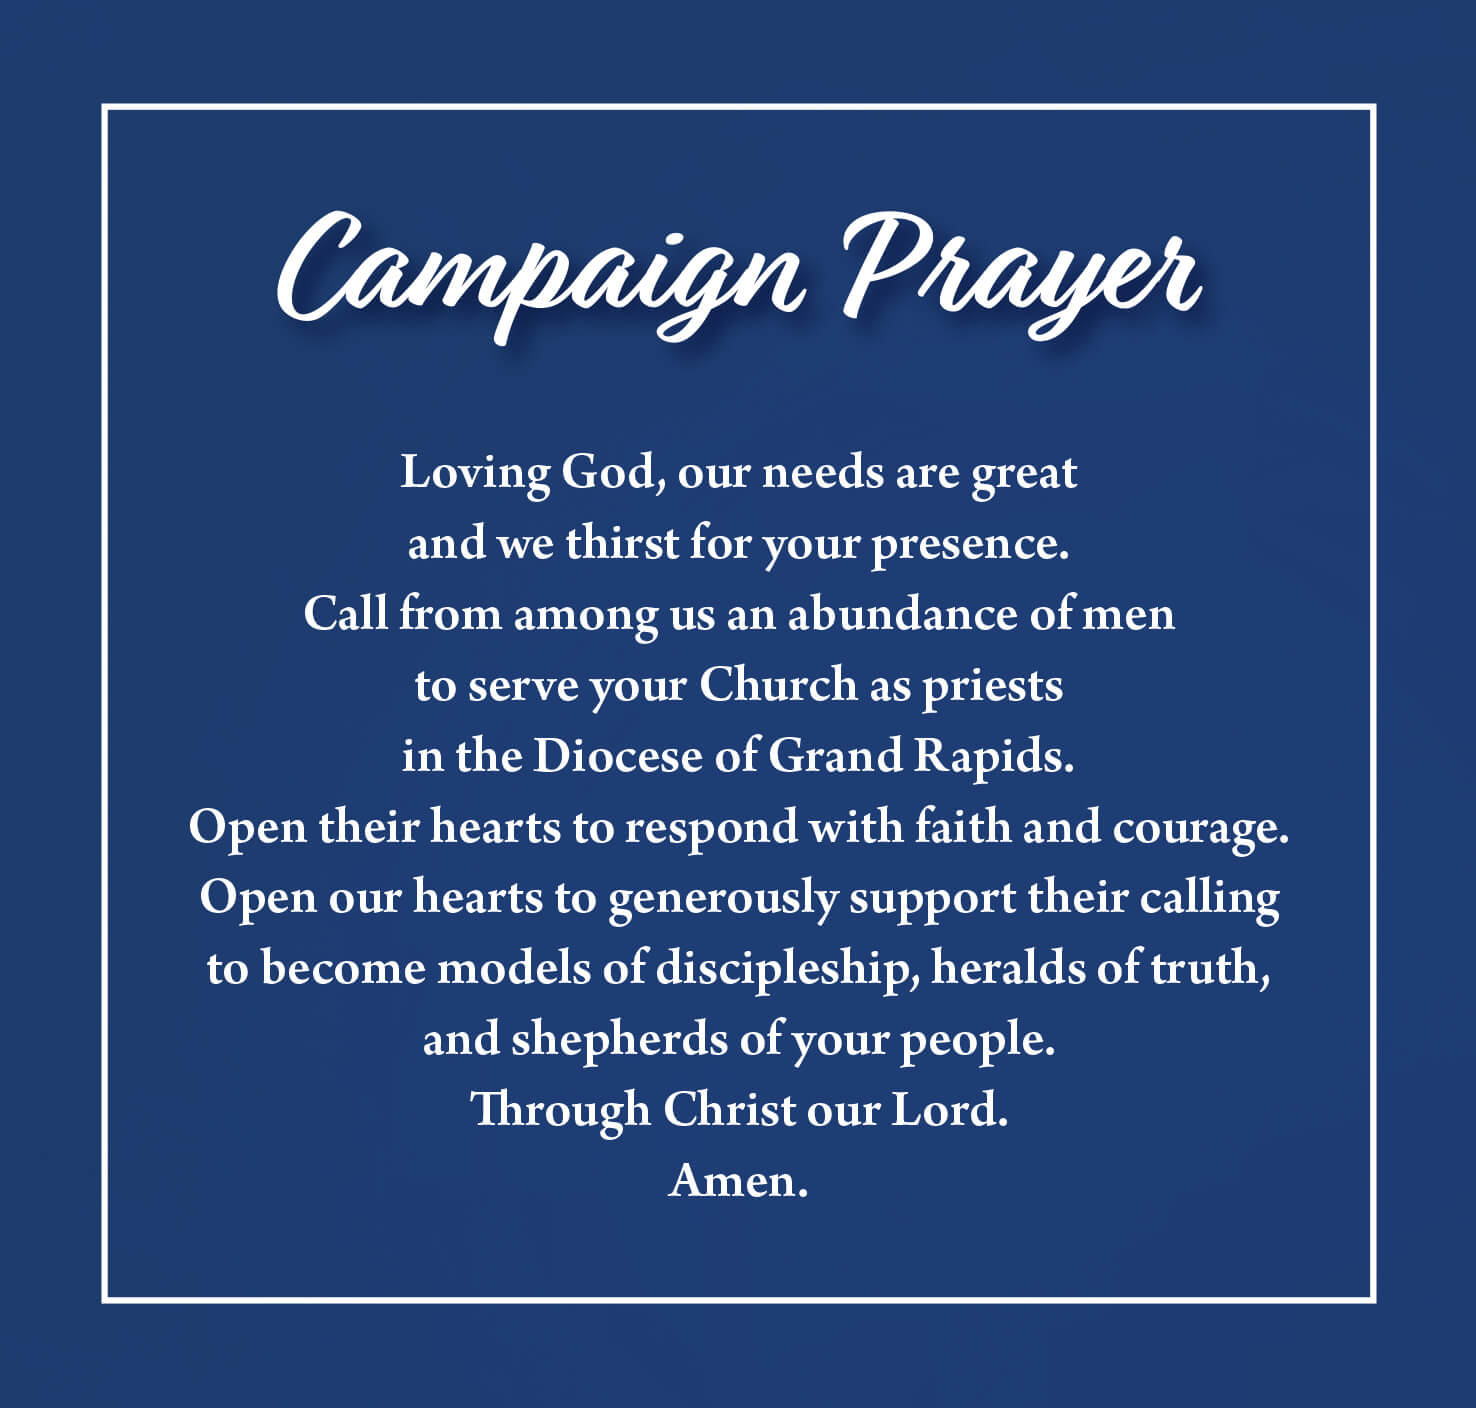 graphic of campaign prayer for Our Shepherds - Our Future